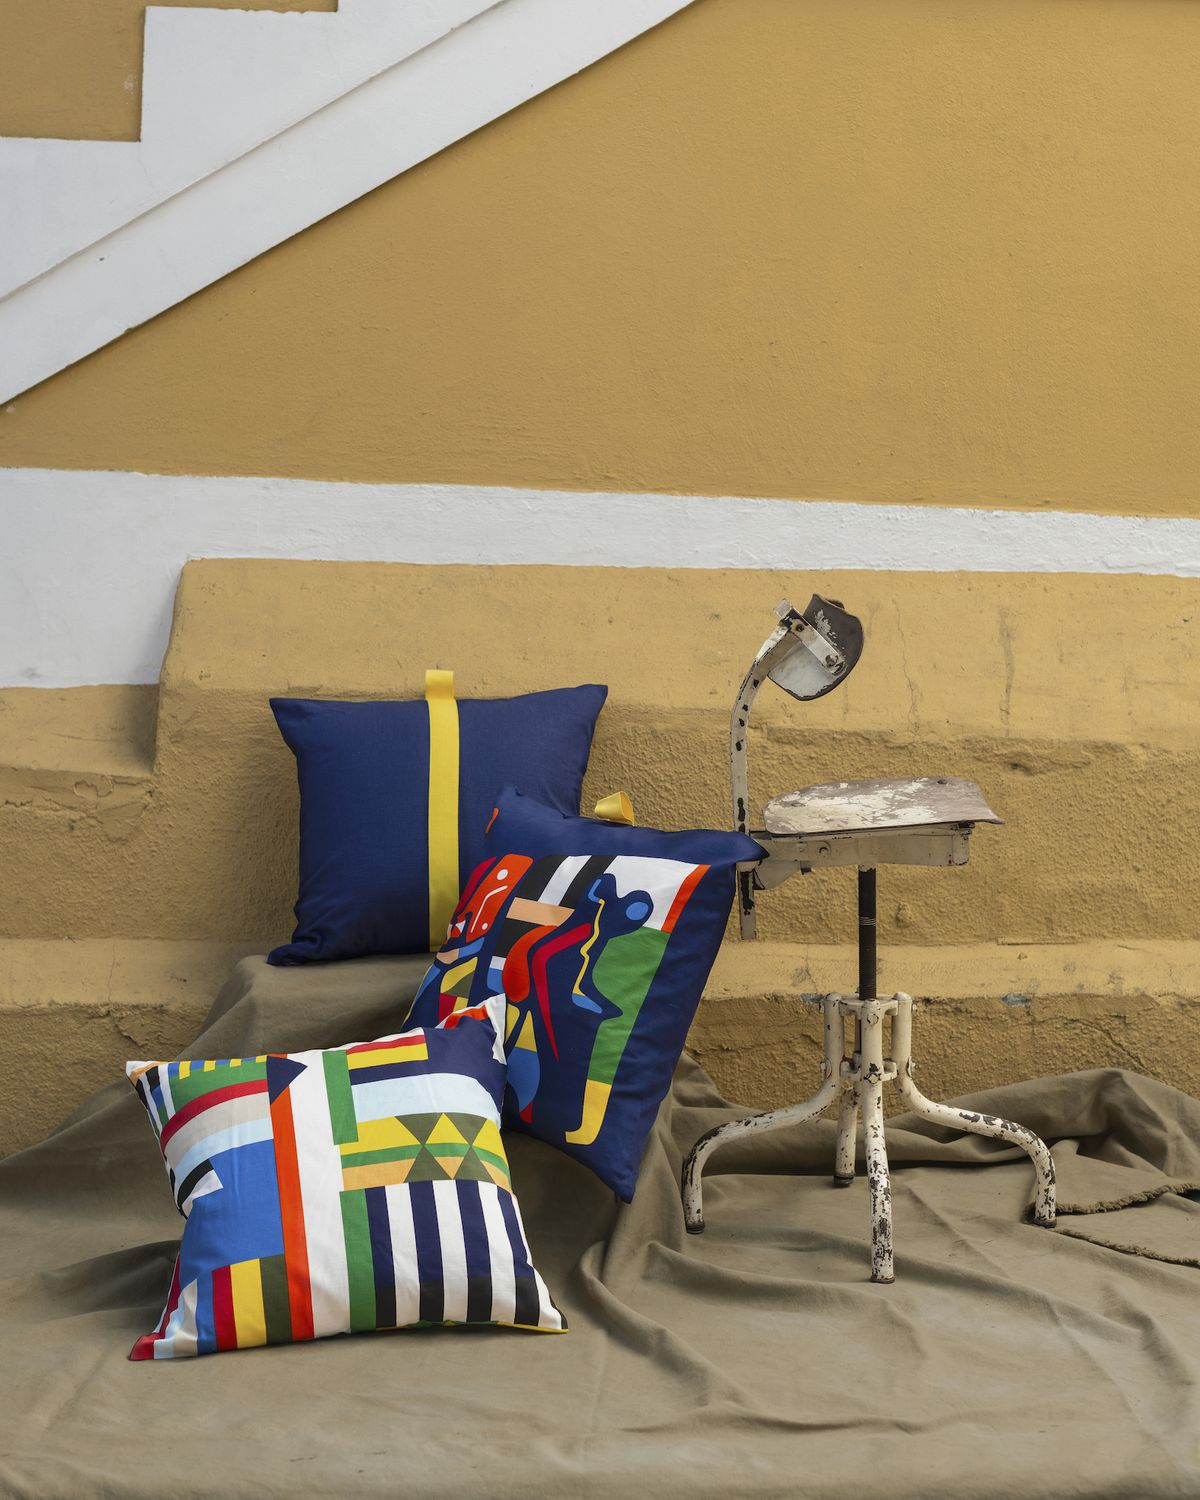 Colorful pillows leaning against wall